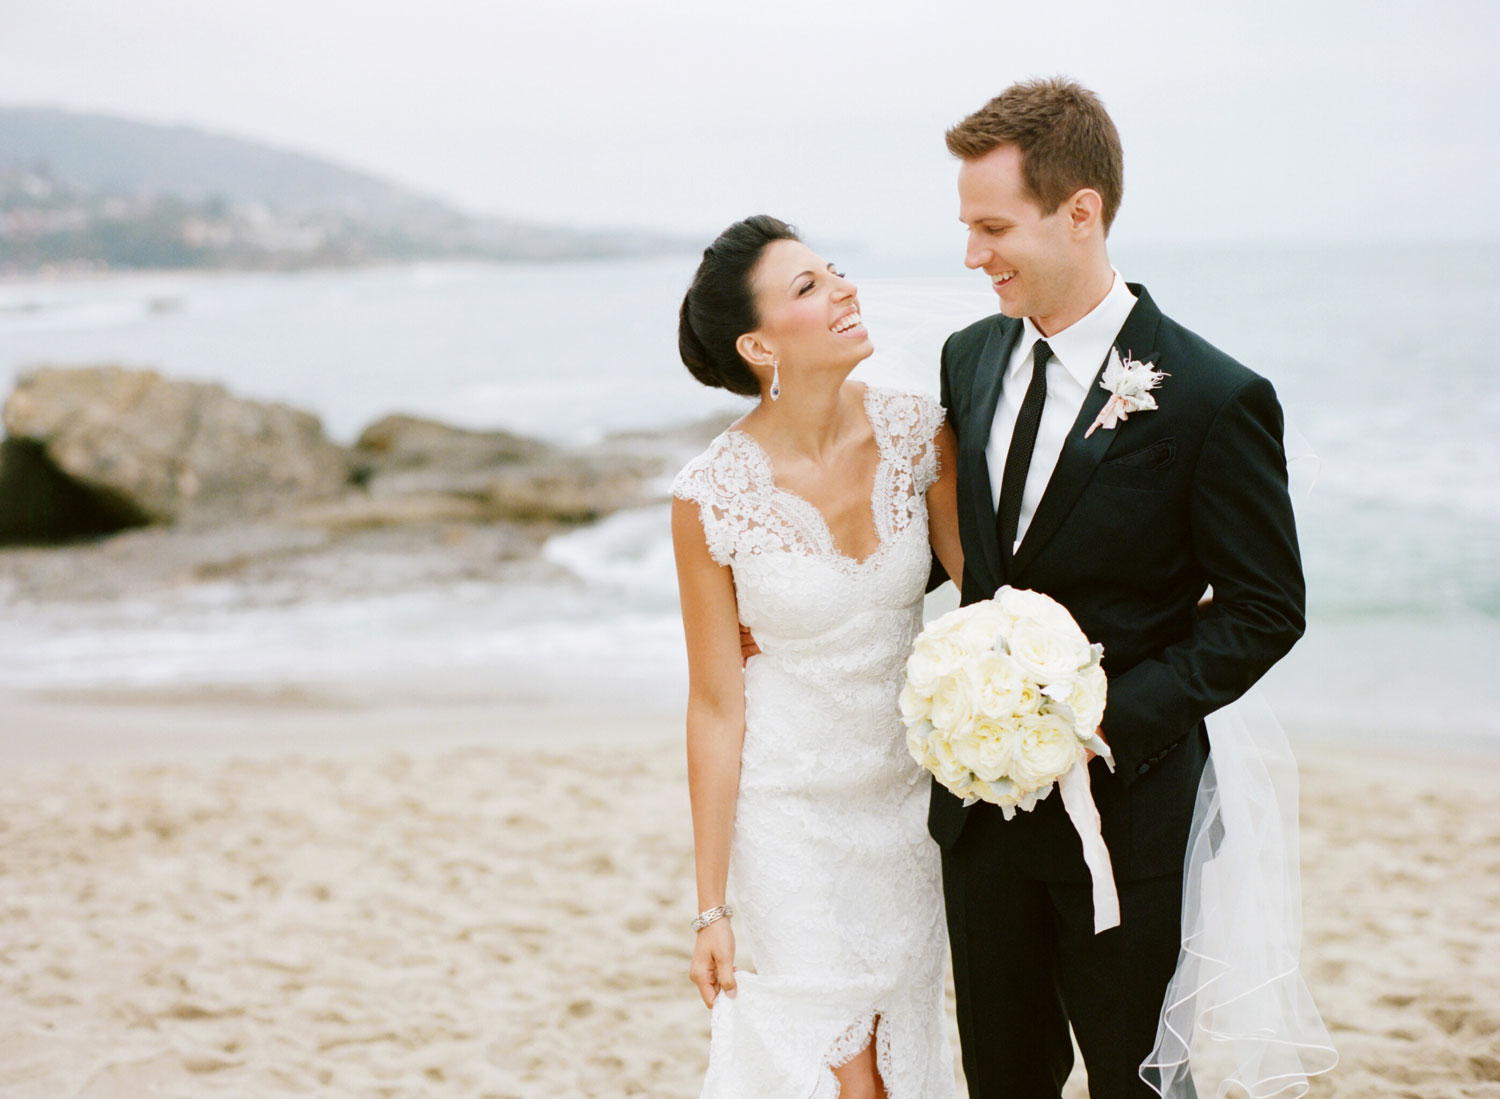 Bride and groom walking on beach in Laguna Beach